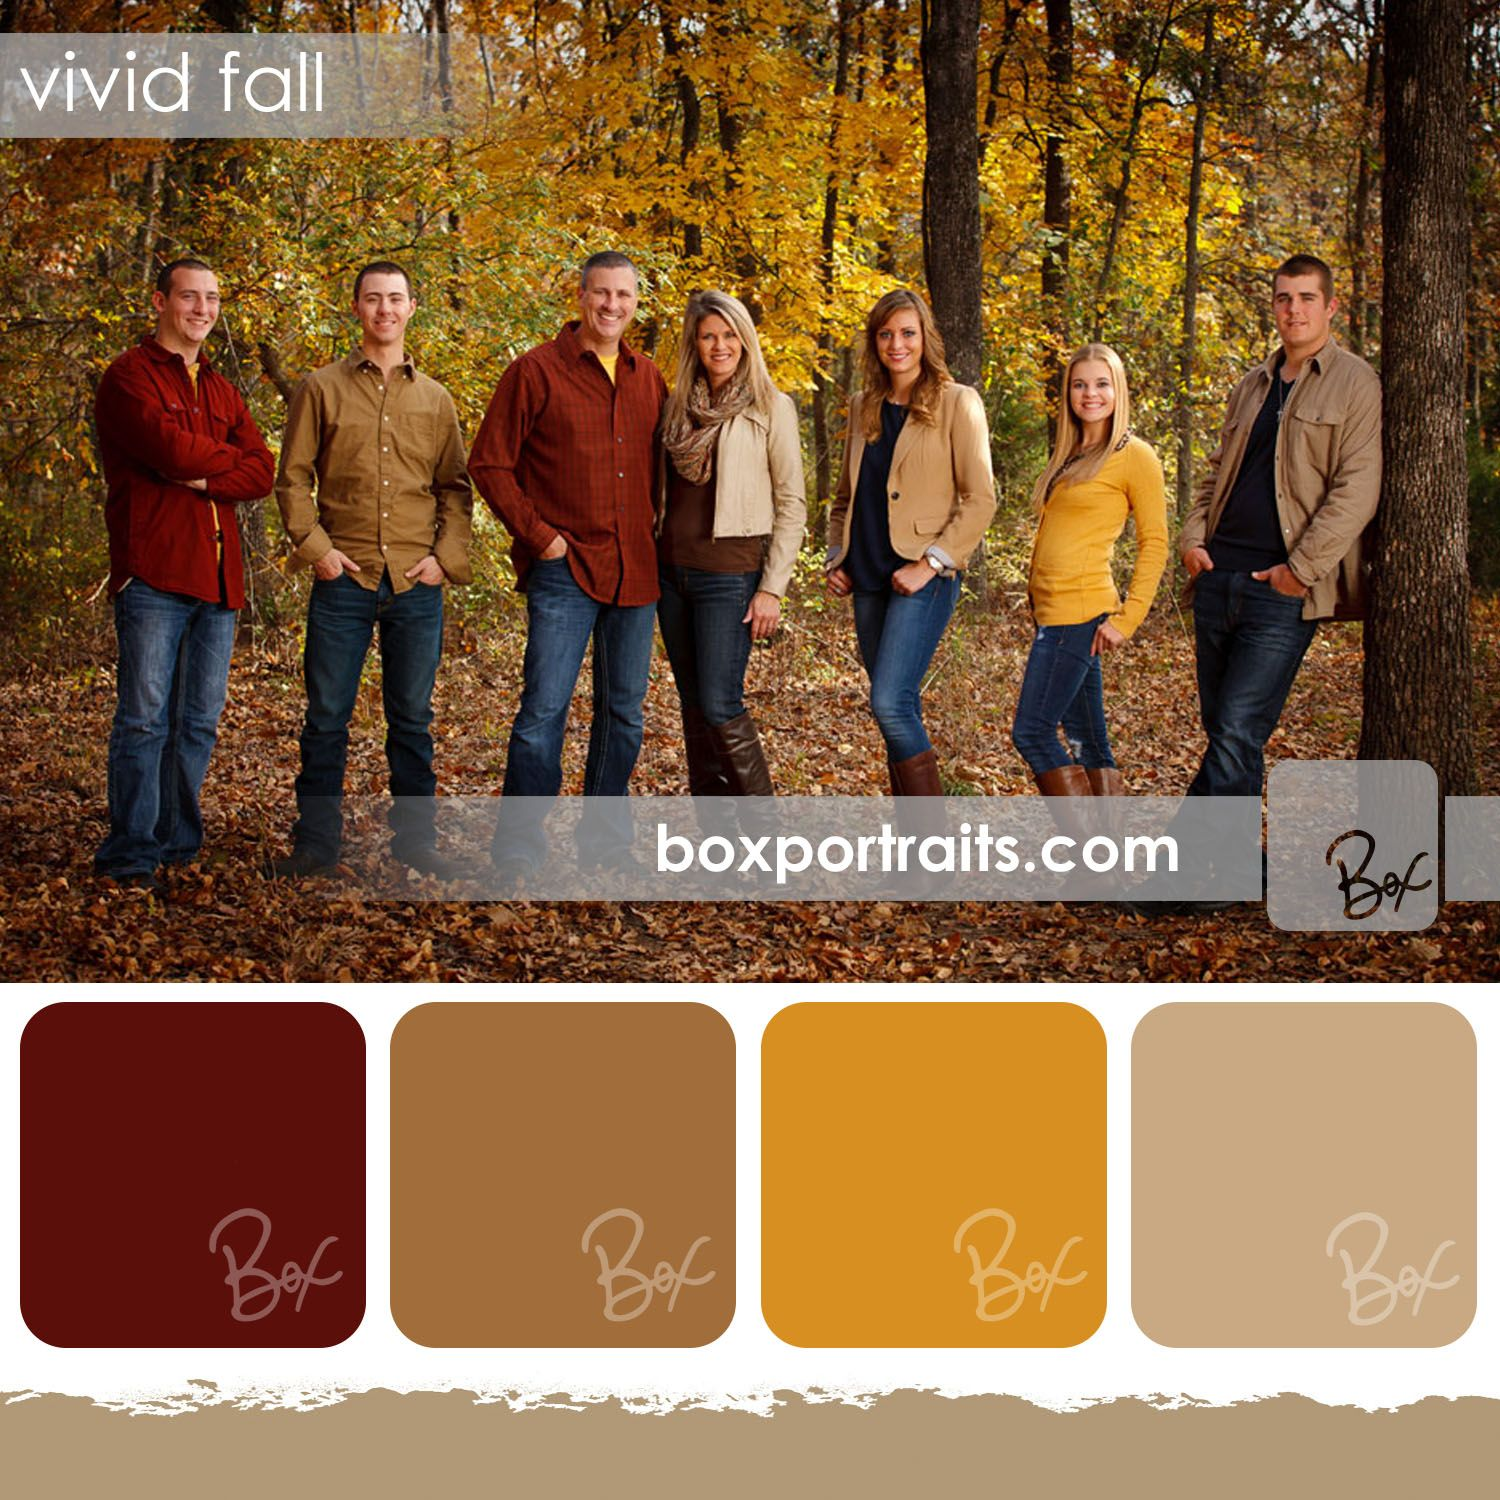 vivid fall family portrait color schemes ideas pinterest family pictures family pics. Black Bedroom Furniture Sets. Home Design Ideas